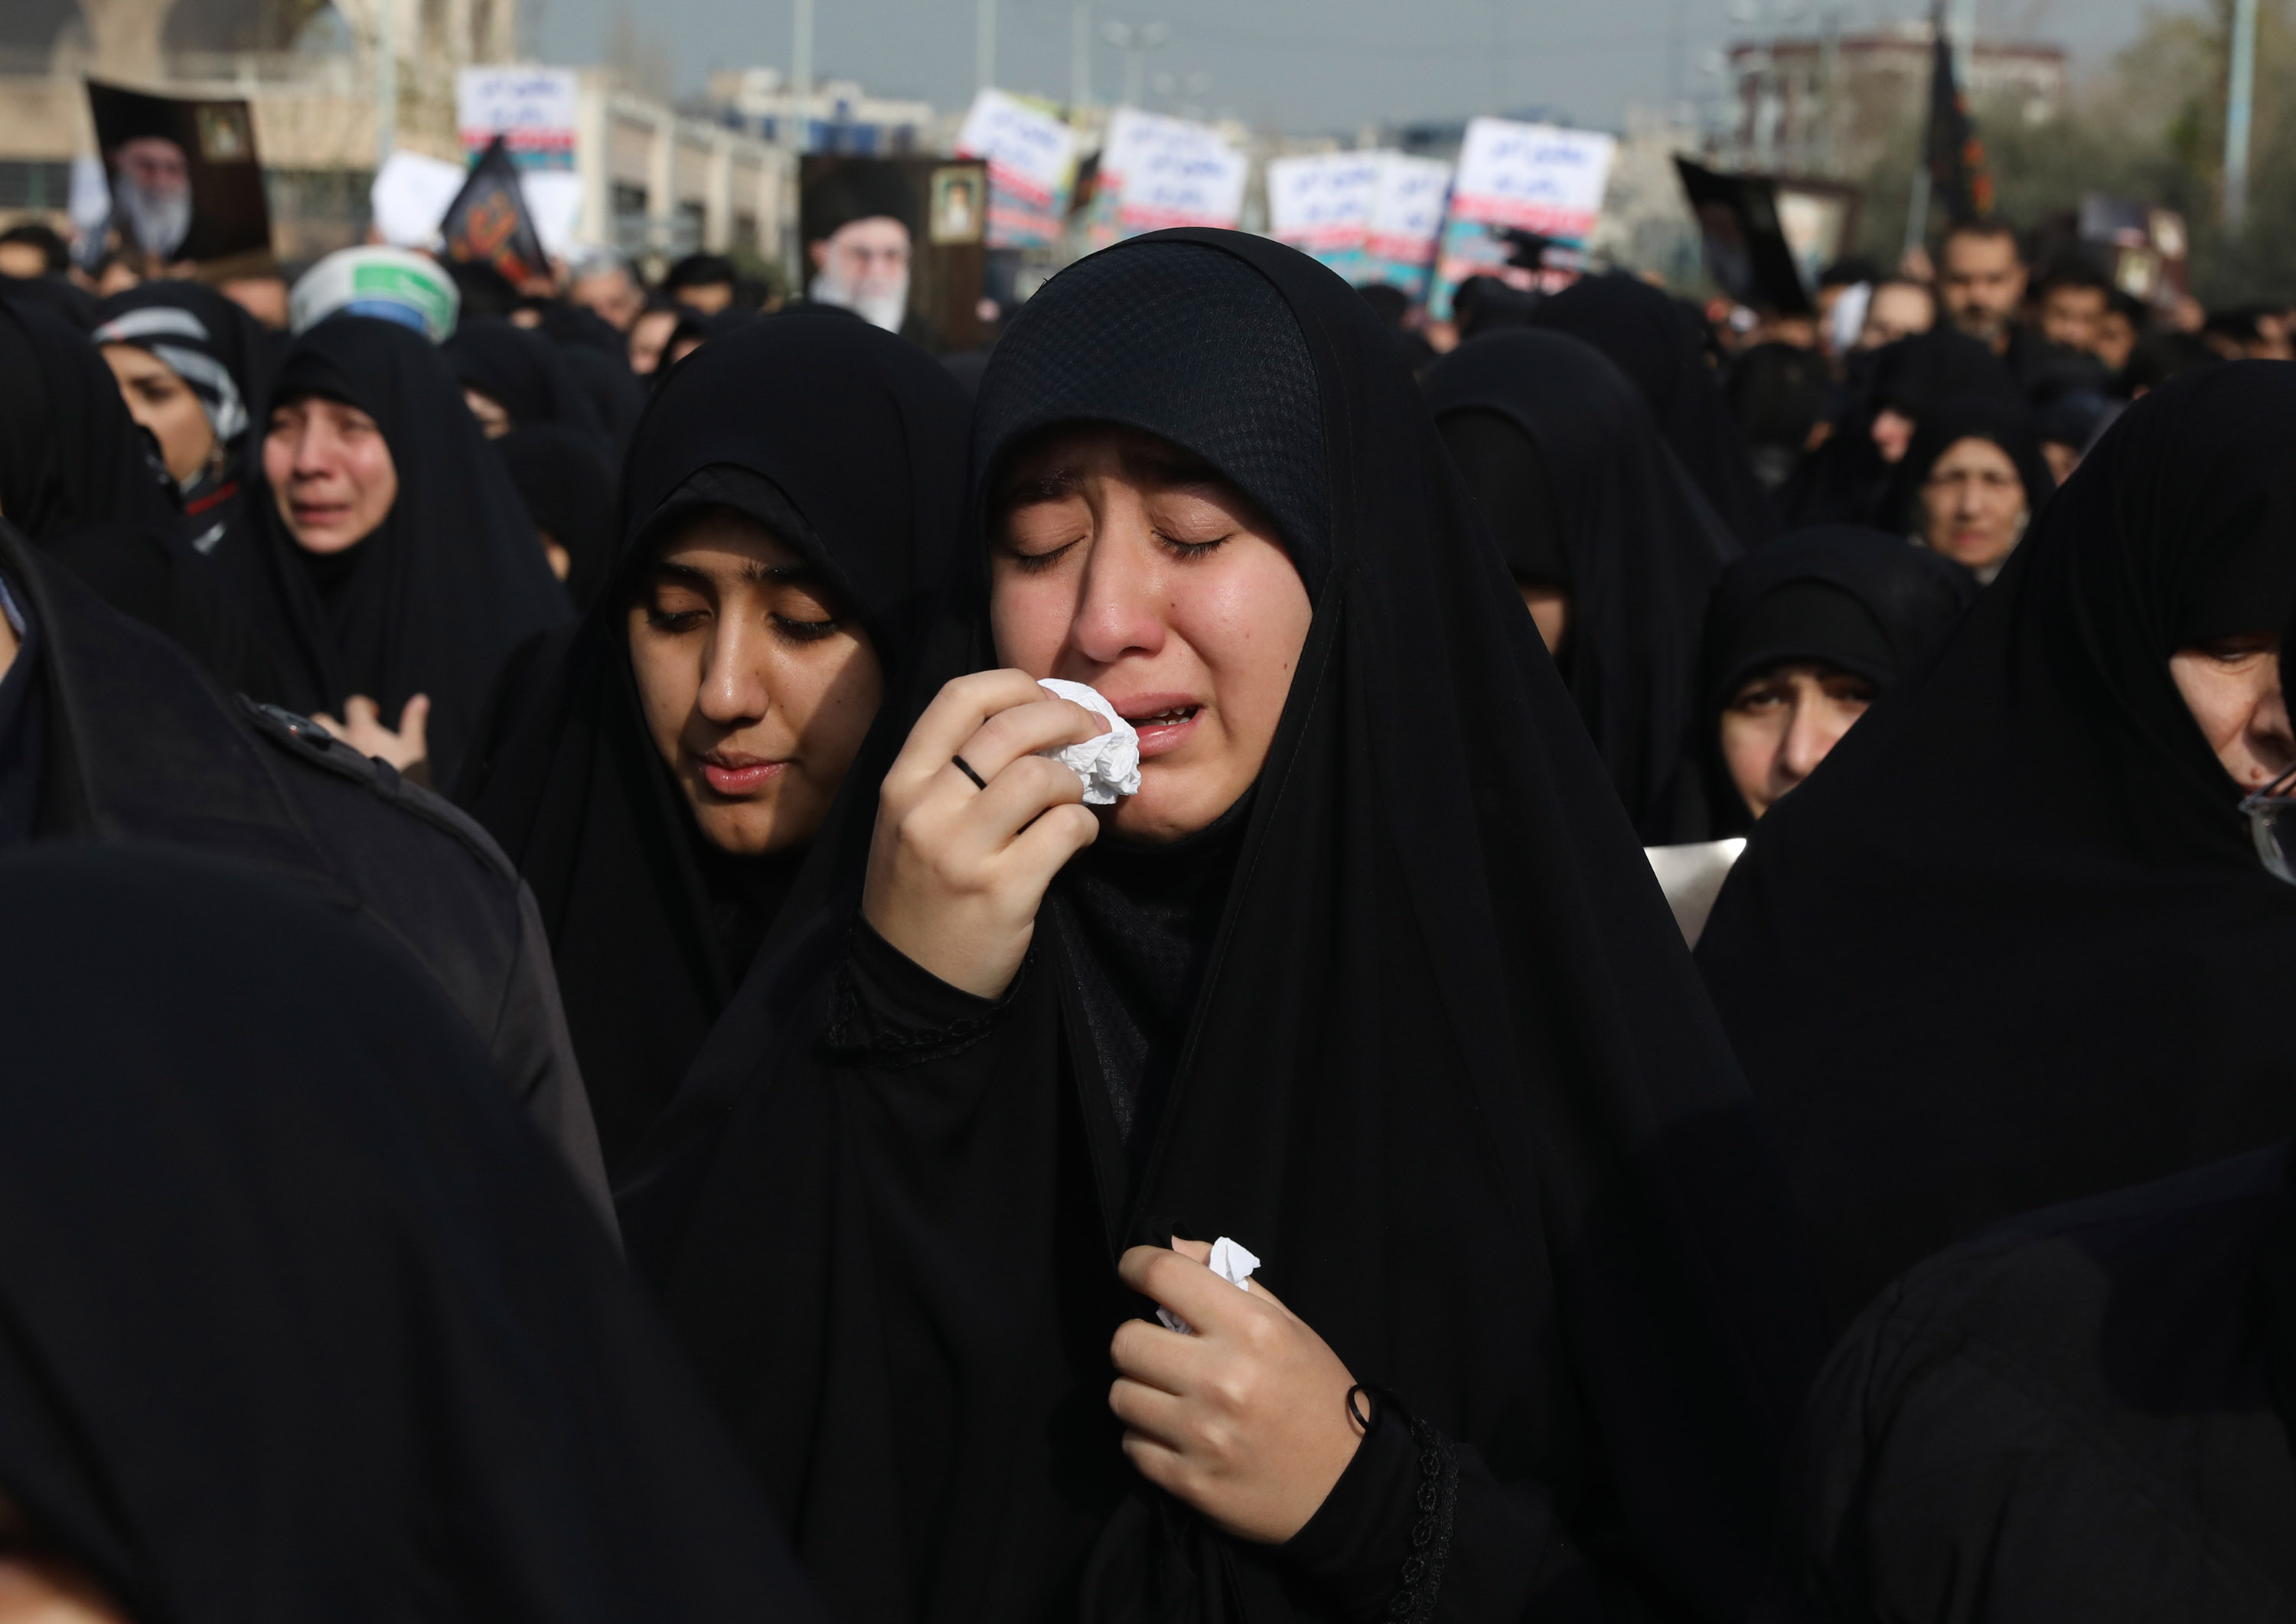 A women reacts during a demonstration over the death of General Qassem Soleimani. Credit: Vahid Salemi/AP